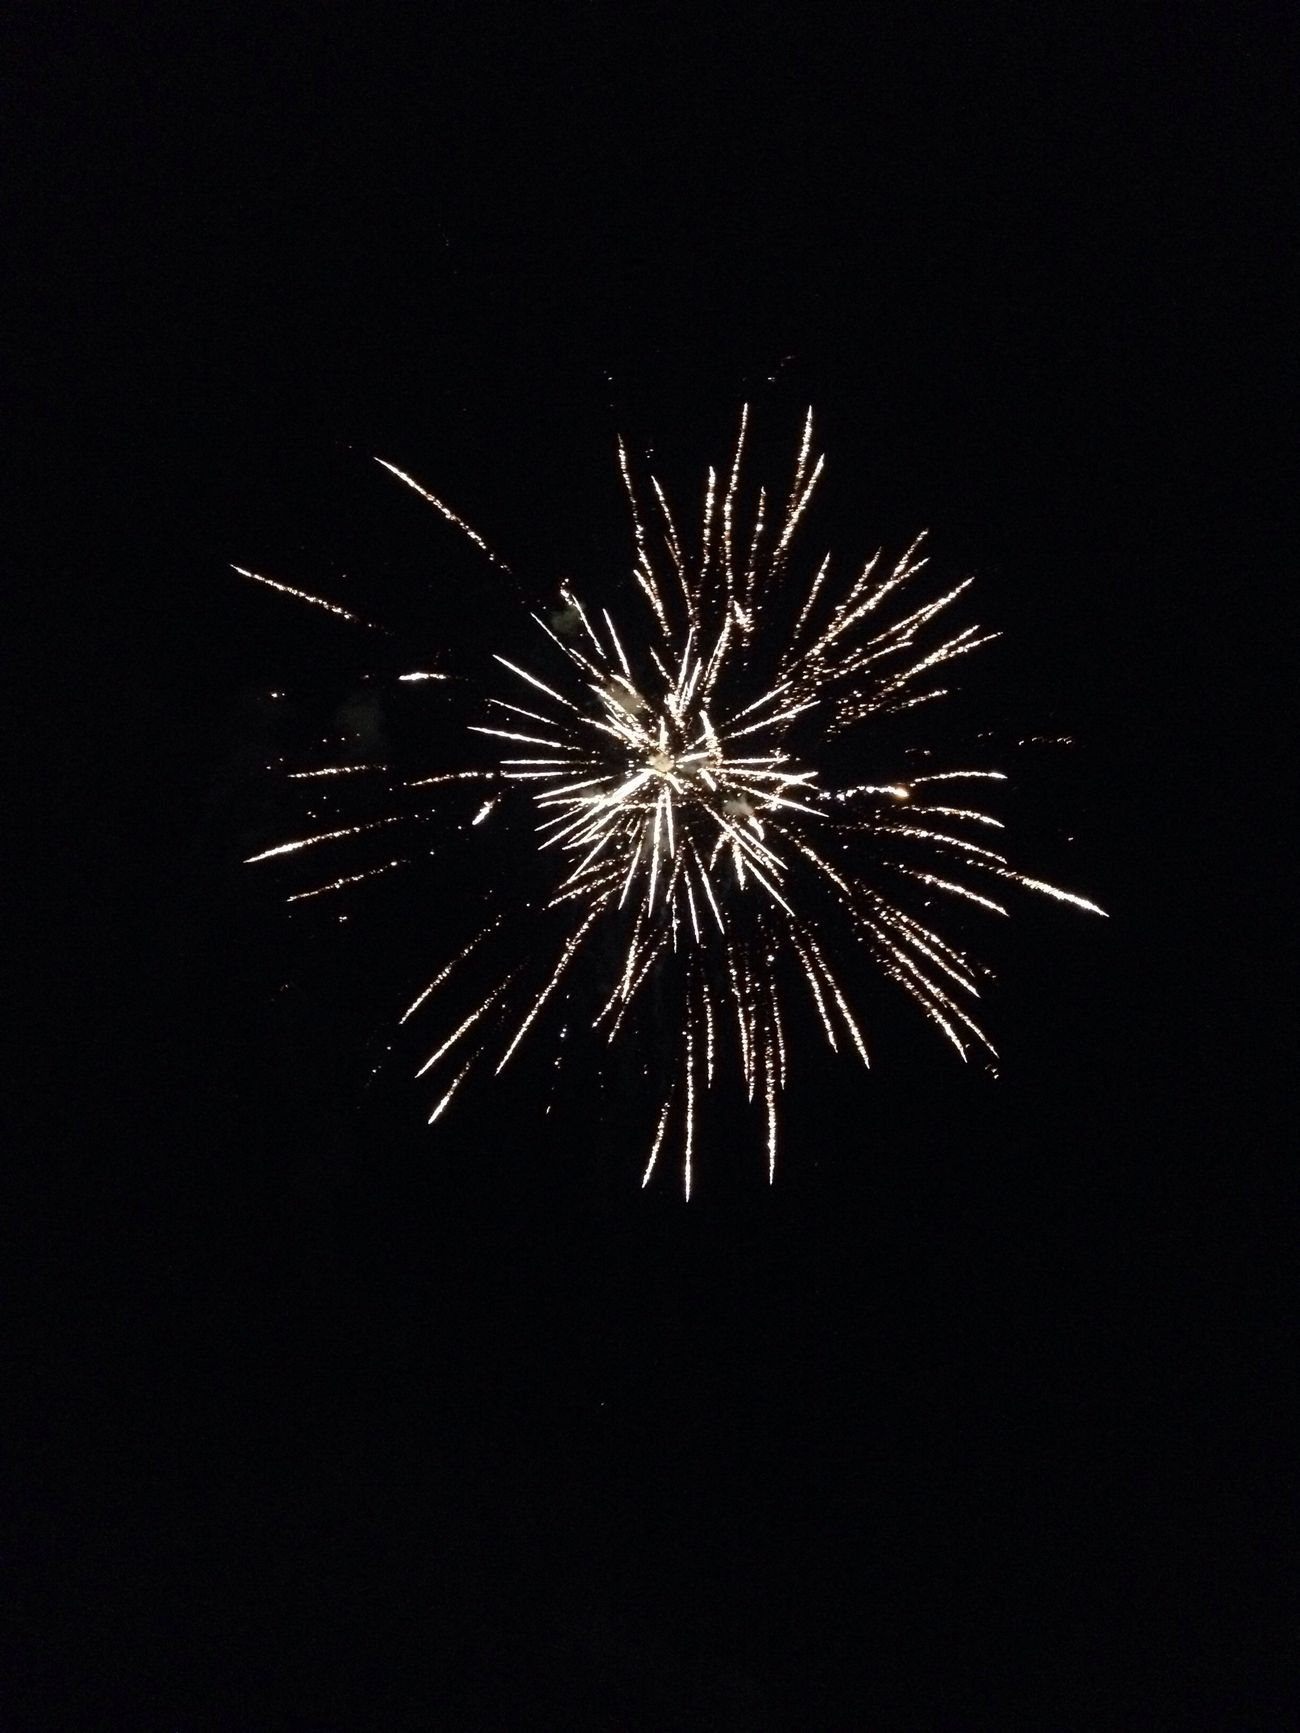 Firework Display Firework - Man Made Object Celebration Sparks Night Event Arts Culture And Entertainment Low Angle View Motion Blurred Motion Glowing Illuminated Firework No People Sky Sparkler Outdoors Clear Sky